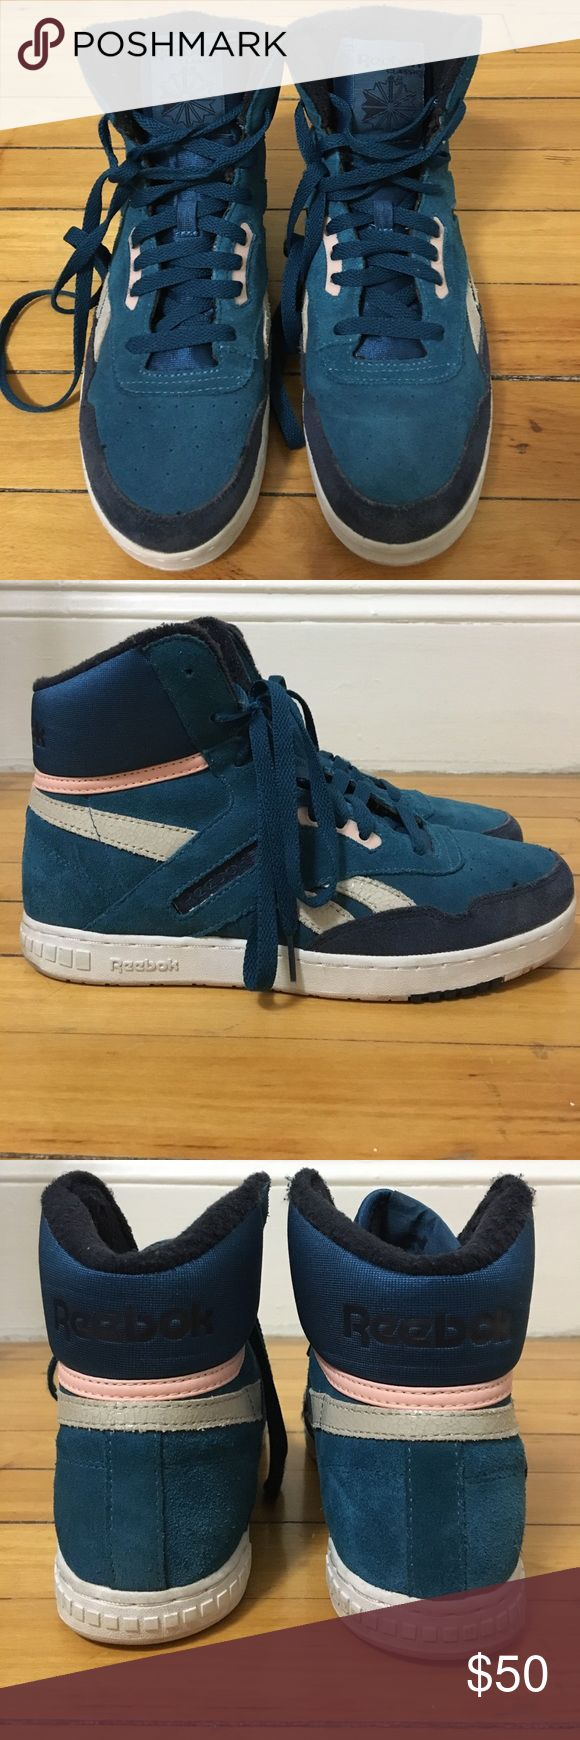 Reebok Classic Suede x Snakeskin Hightops Reebok Classic Suede x Snakeskin Hightops in Blue // Navy // Pink // Off-White branding. Plush around the ankle, Size 9 Reebok Shoes Sneakers